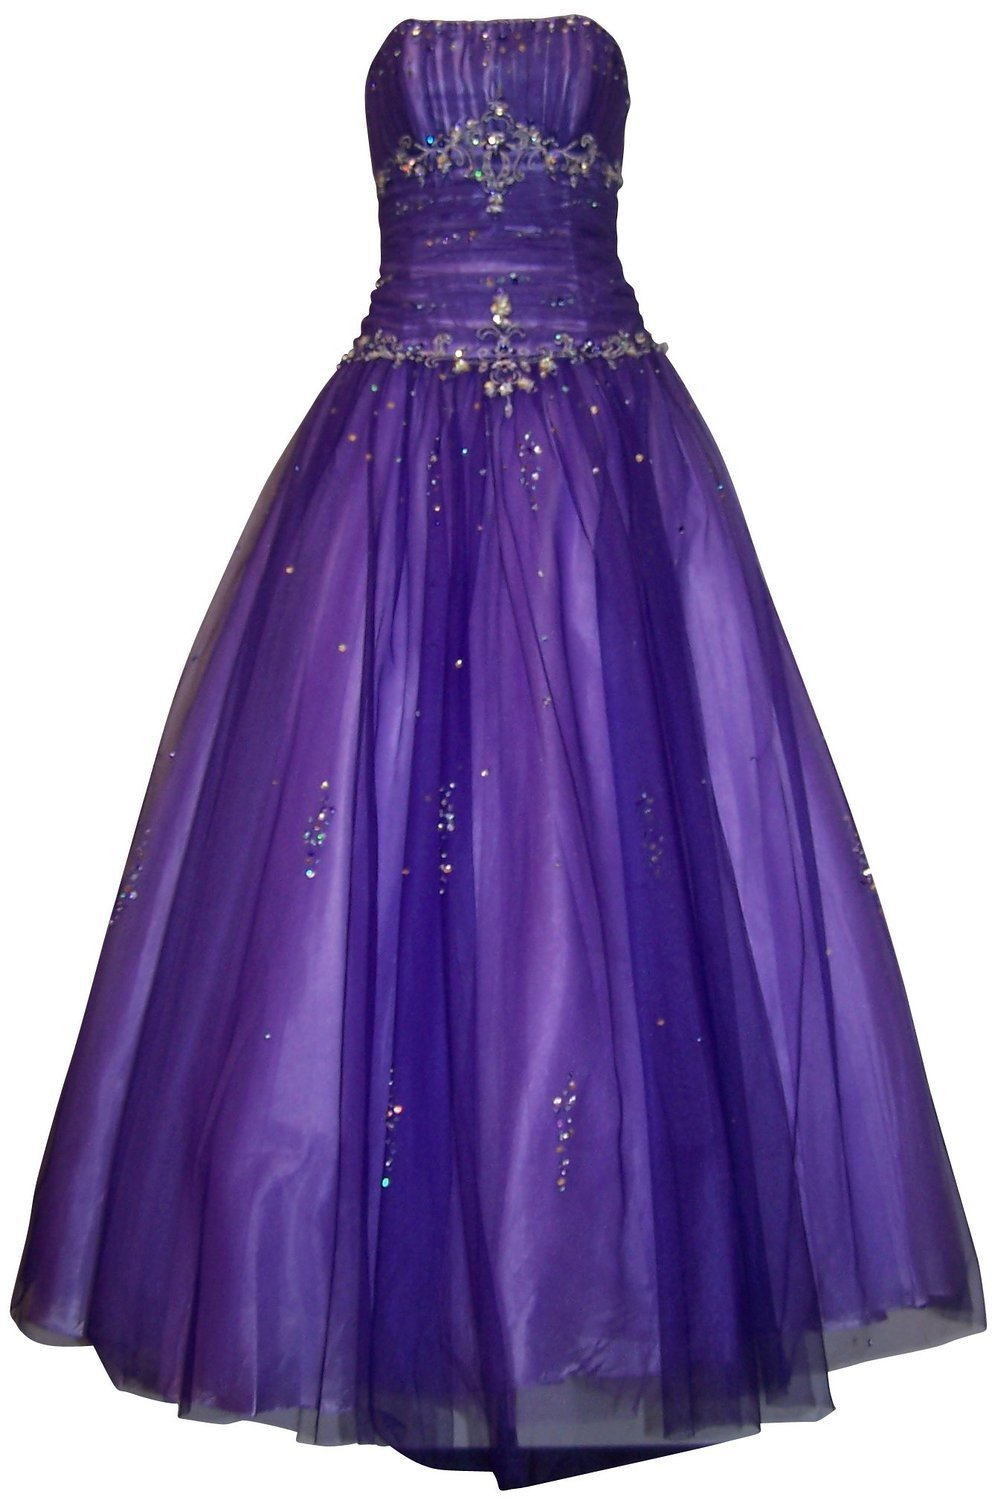 Amazon.com: Autoalive Beaded Mesh Fairy Prom Dress Formal Ball Gown ...